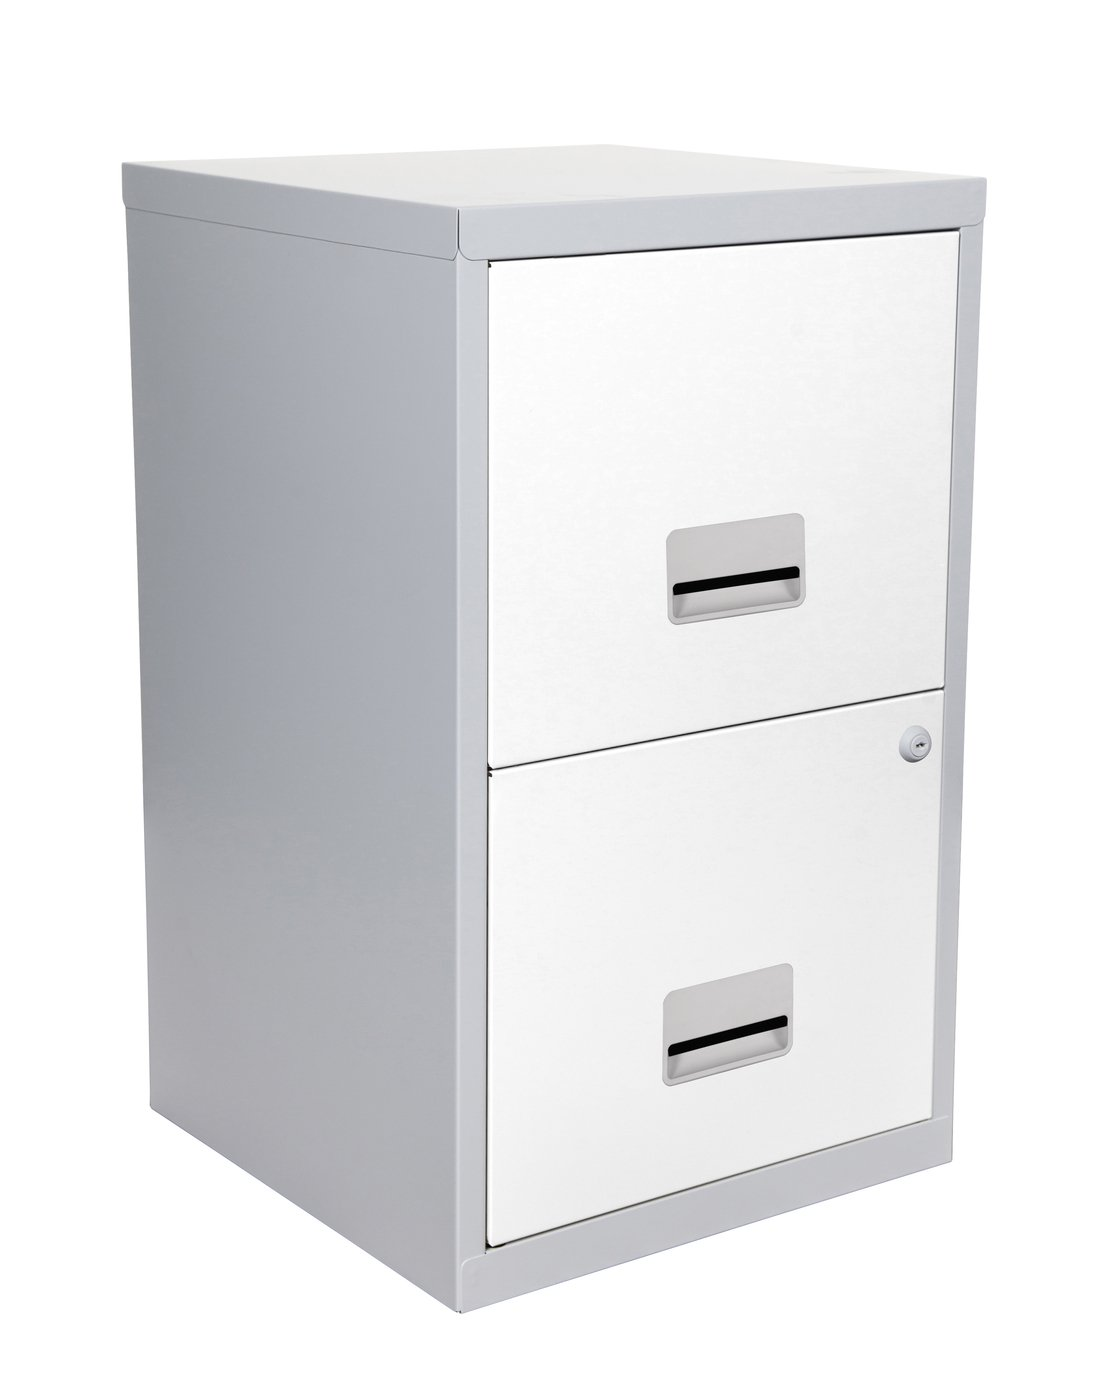 2 Drawer Metal Filing Cabinet - Silver and White